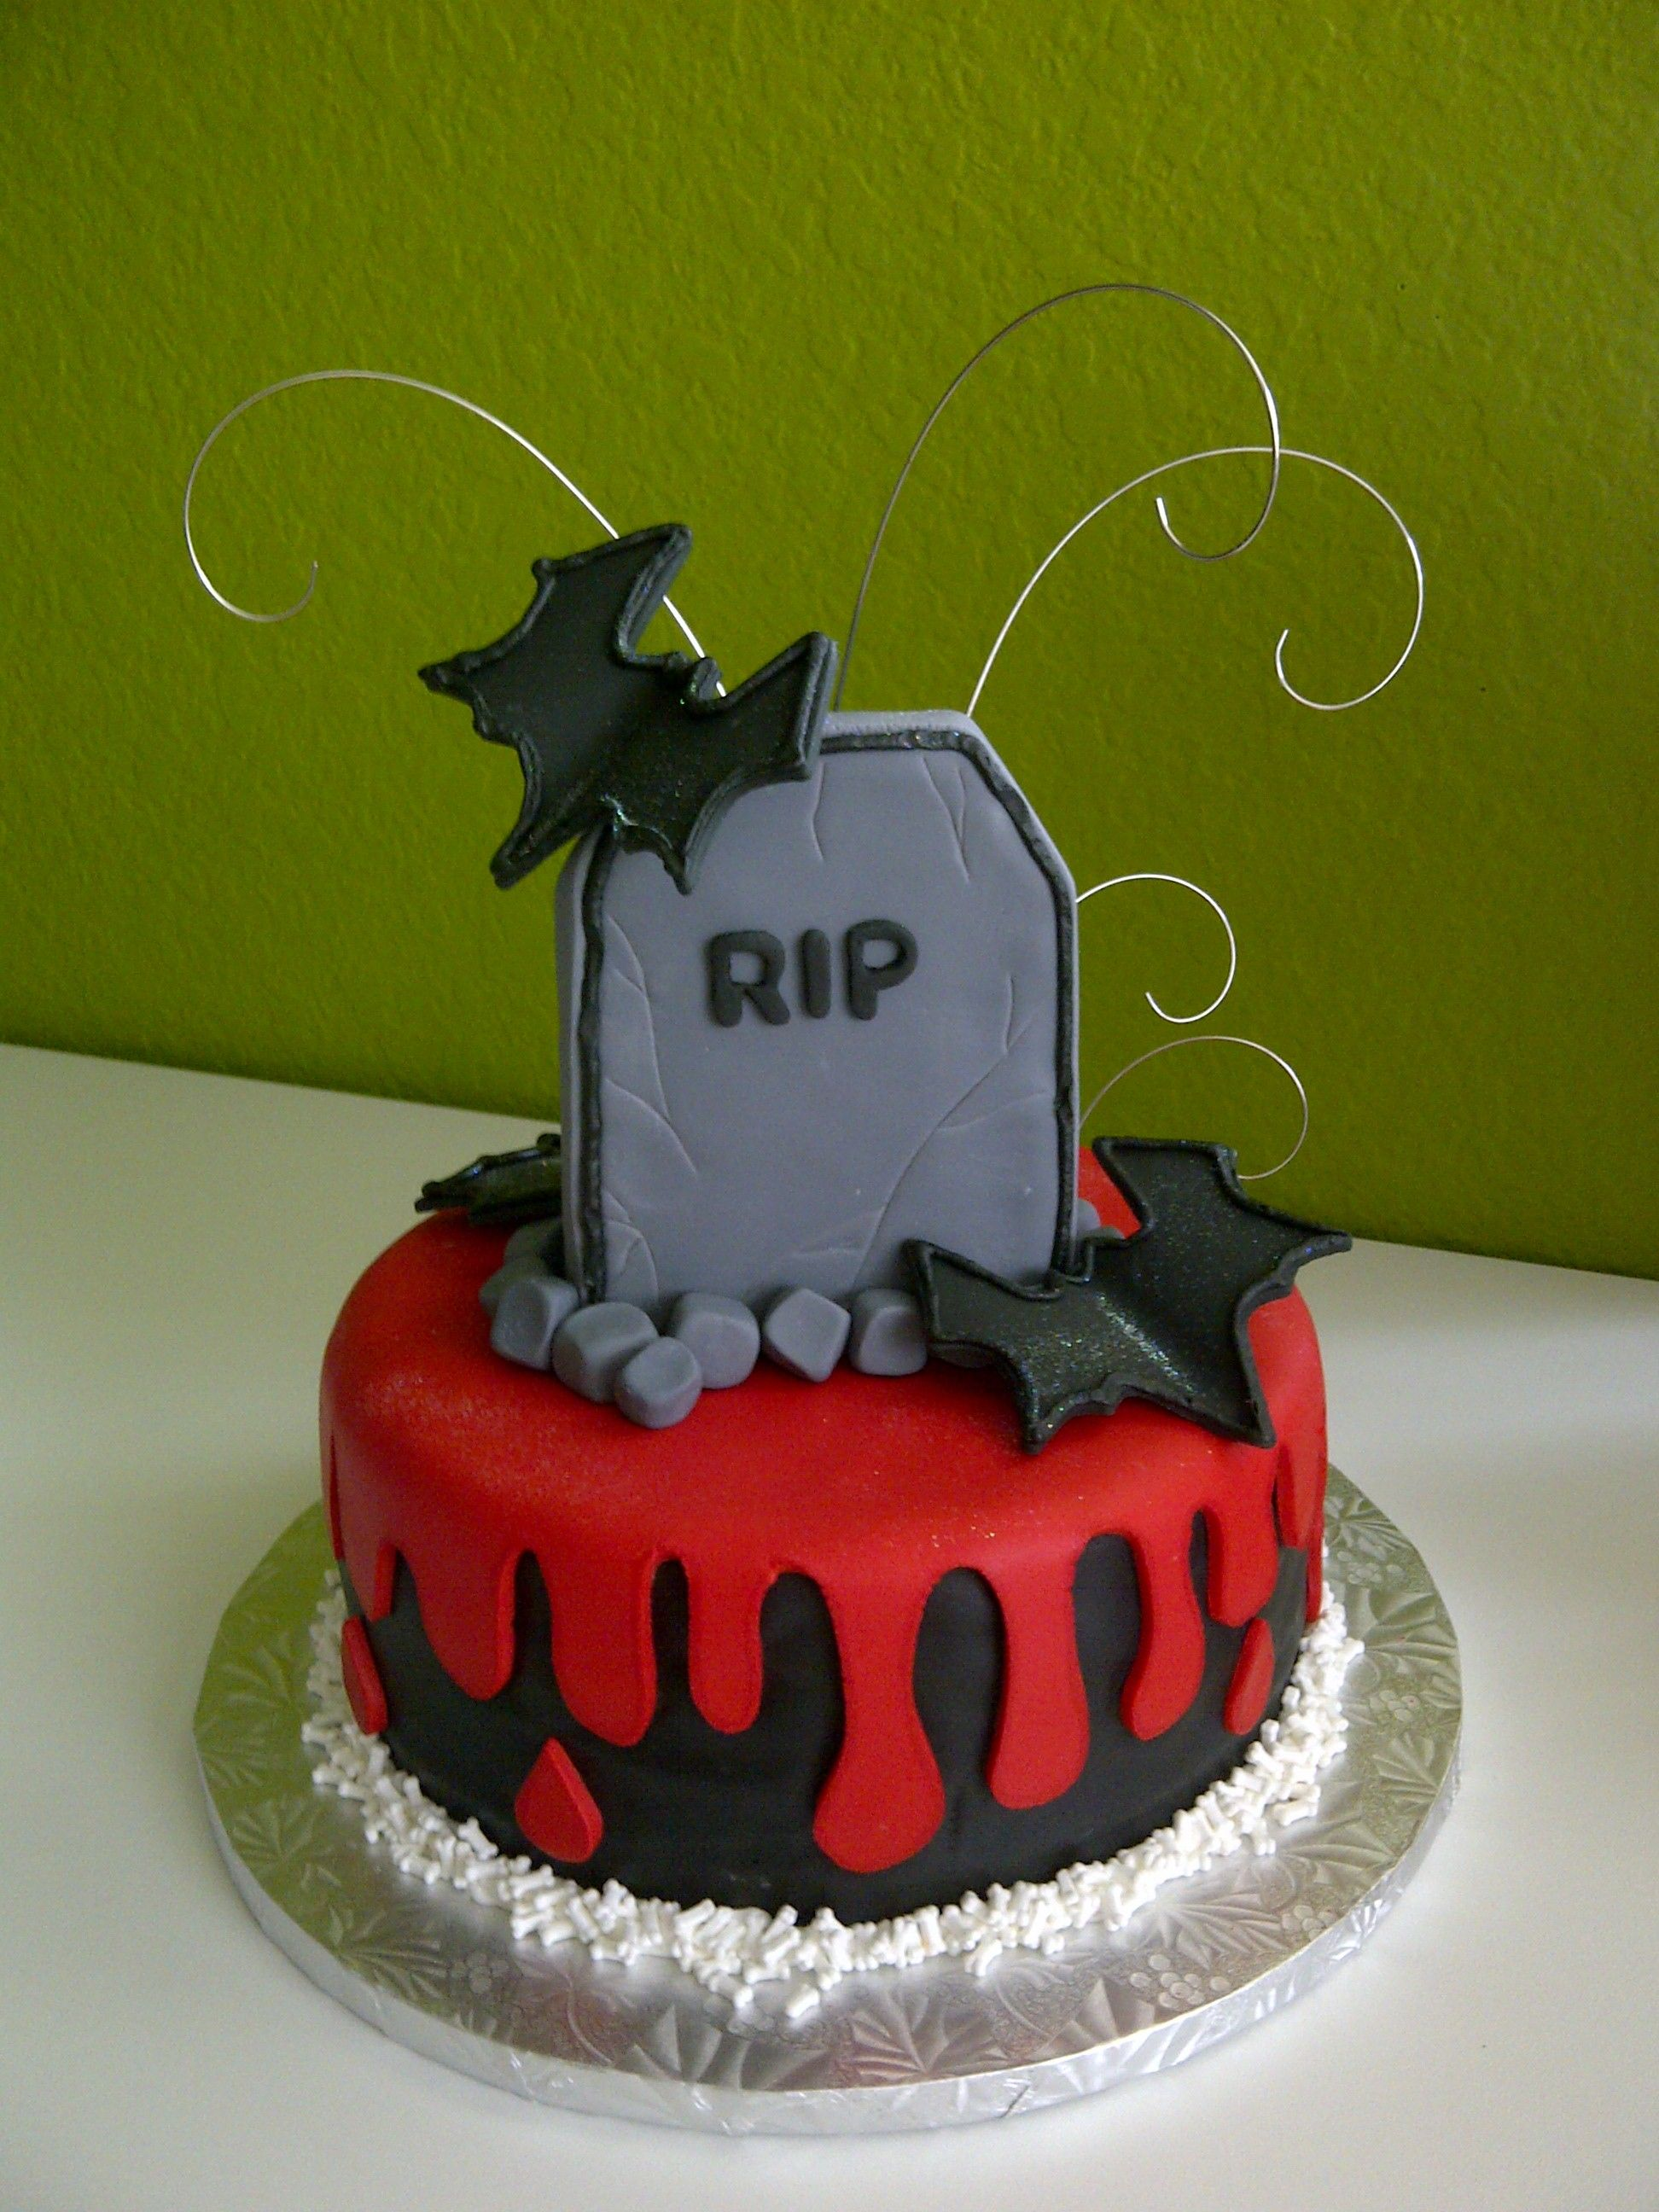 Halloween Cake Celebration Cakes ideas Pinterest Halloween - Halloween Cake Decorating Ideas